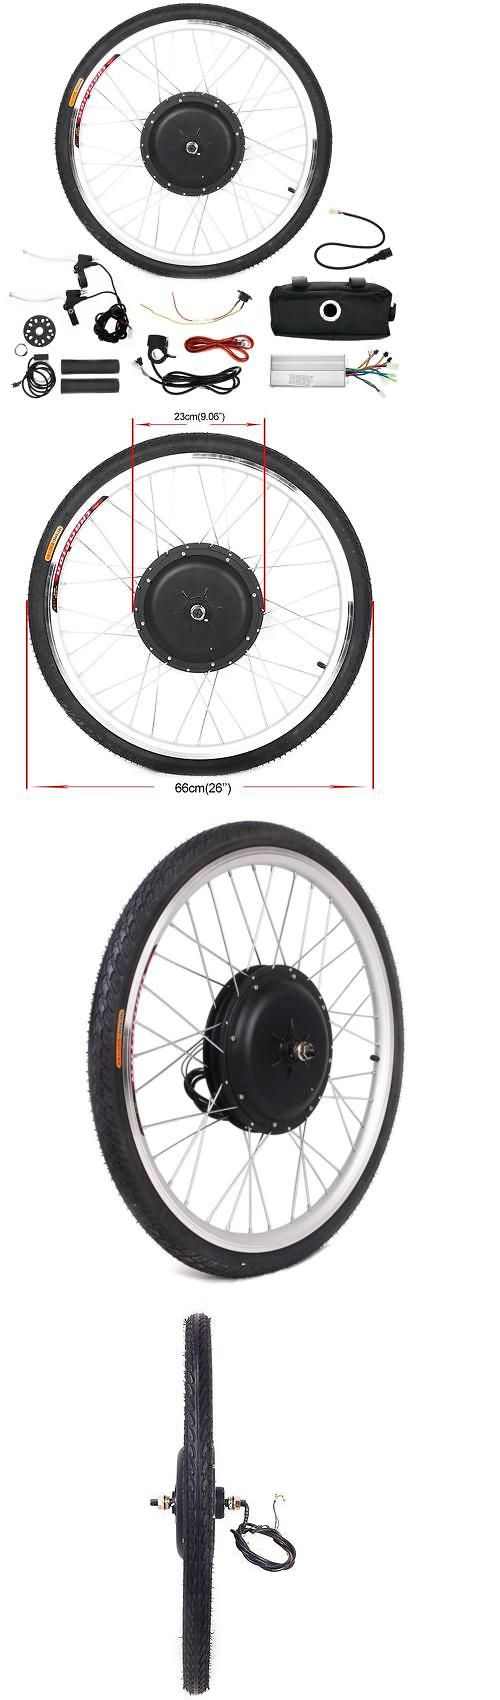 Electric Bicycles 74469: 48V Front Wheel Diy Electric Bicycle Motor Conversion Kit 1000W Ebike Cycling Us -> BUY IT NOW ONLY: $147.97 on eBay!